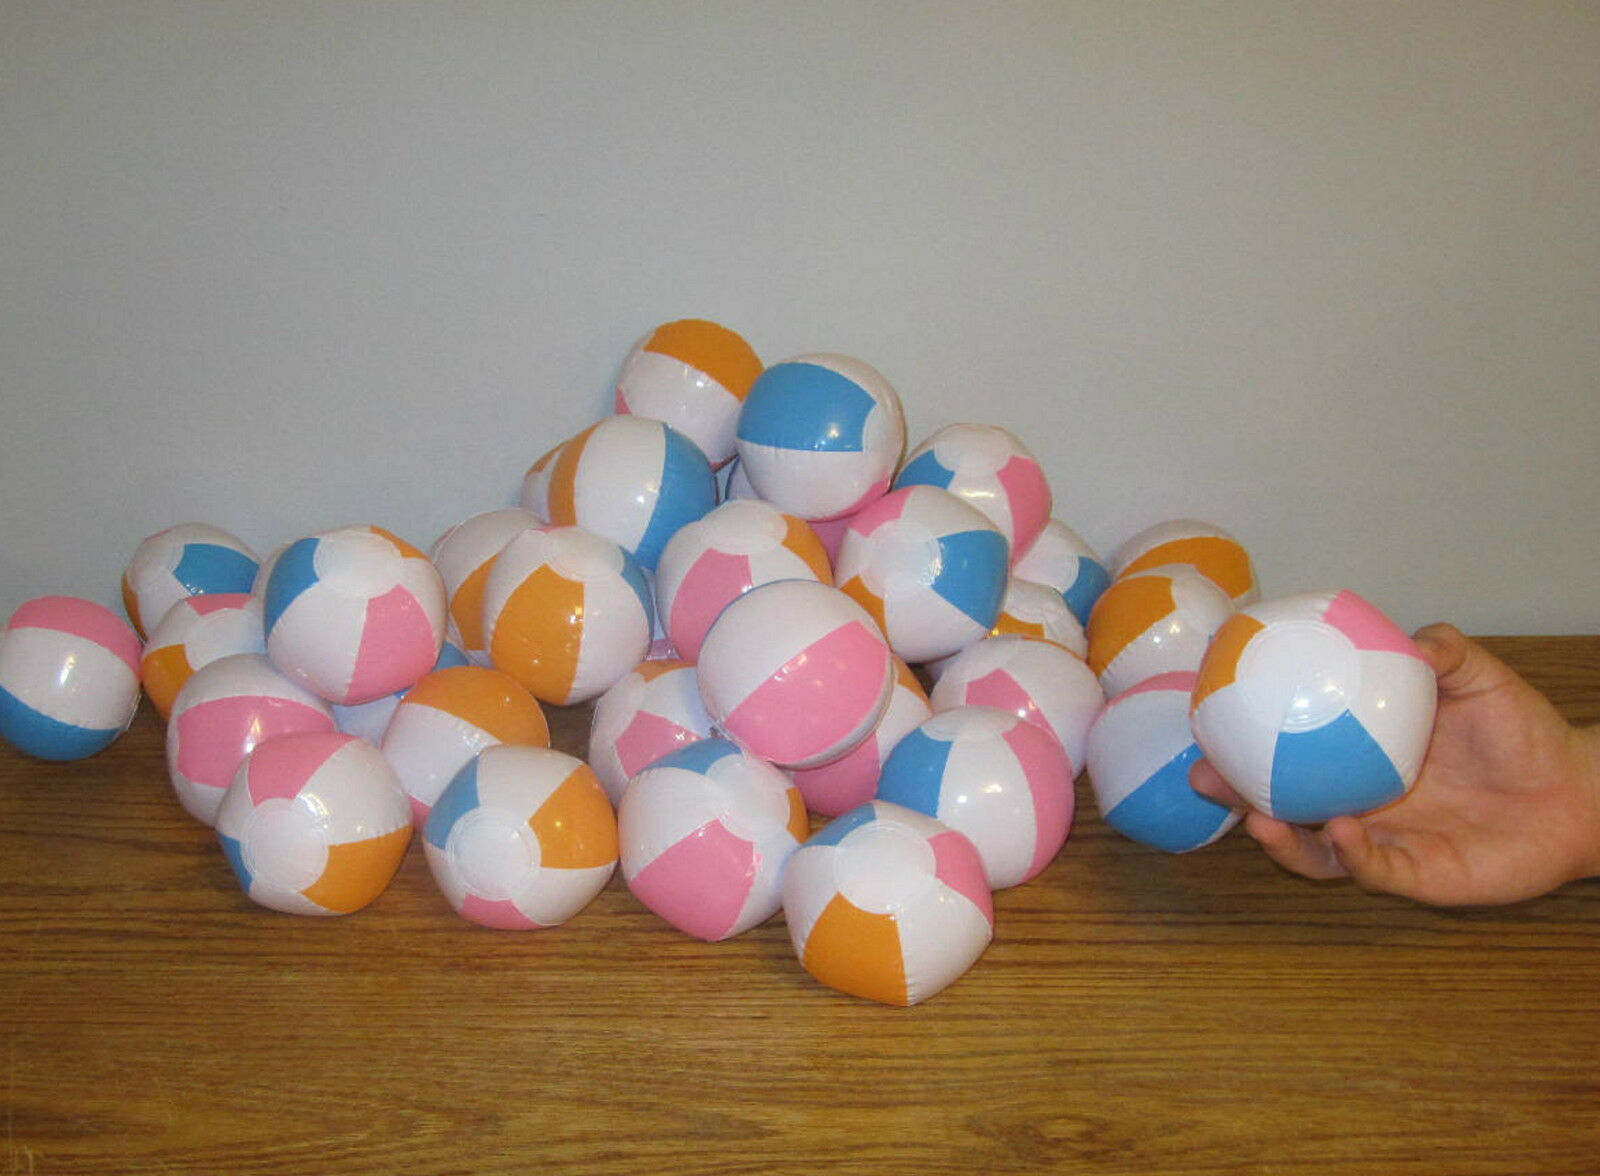 100 NEW NEW NEW MULTI colorD MINI BEACH BALLS 5  INFLATABLE POOL BEACHBALL PARTY FAVORS 941ae8